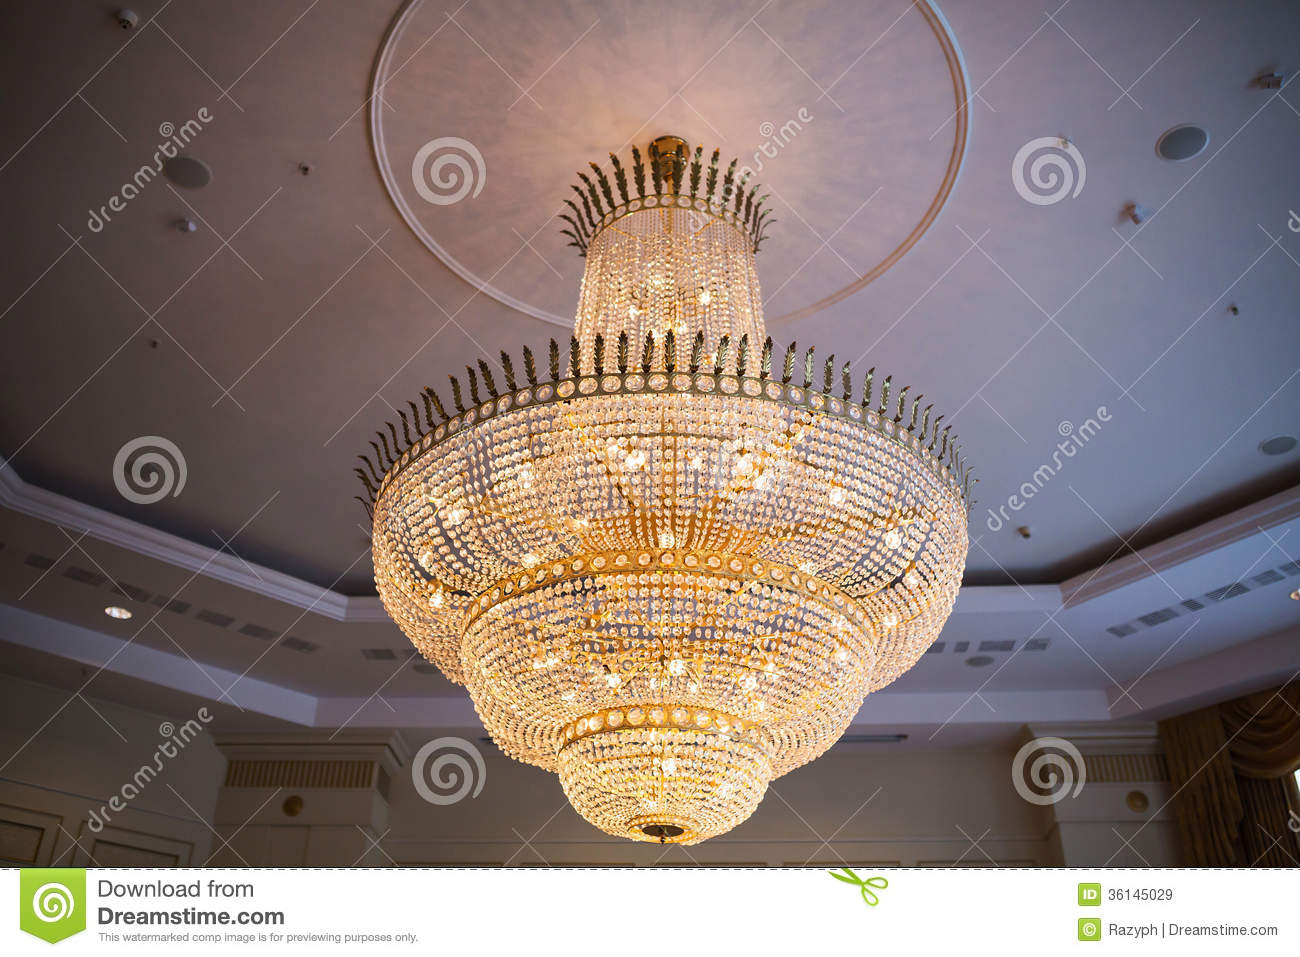 crop and chandeliers luxury chandelier lighting production event